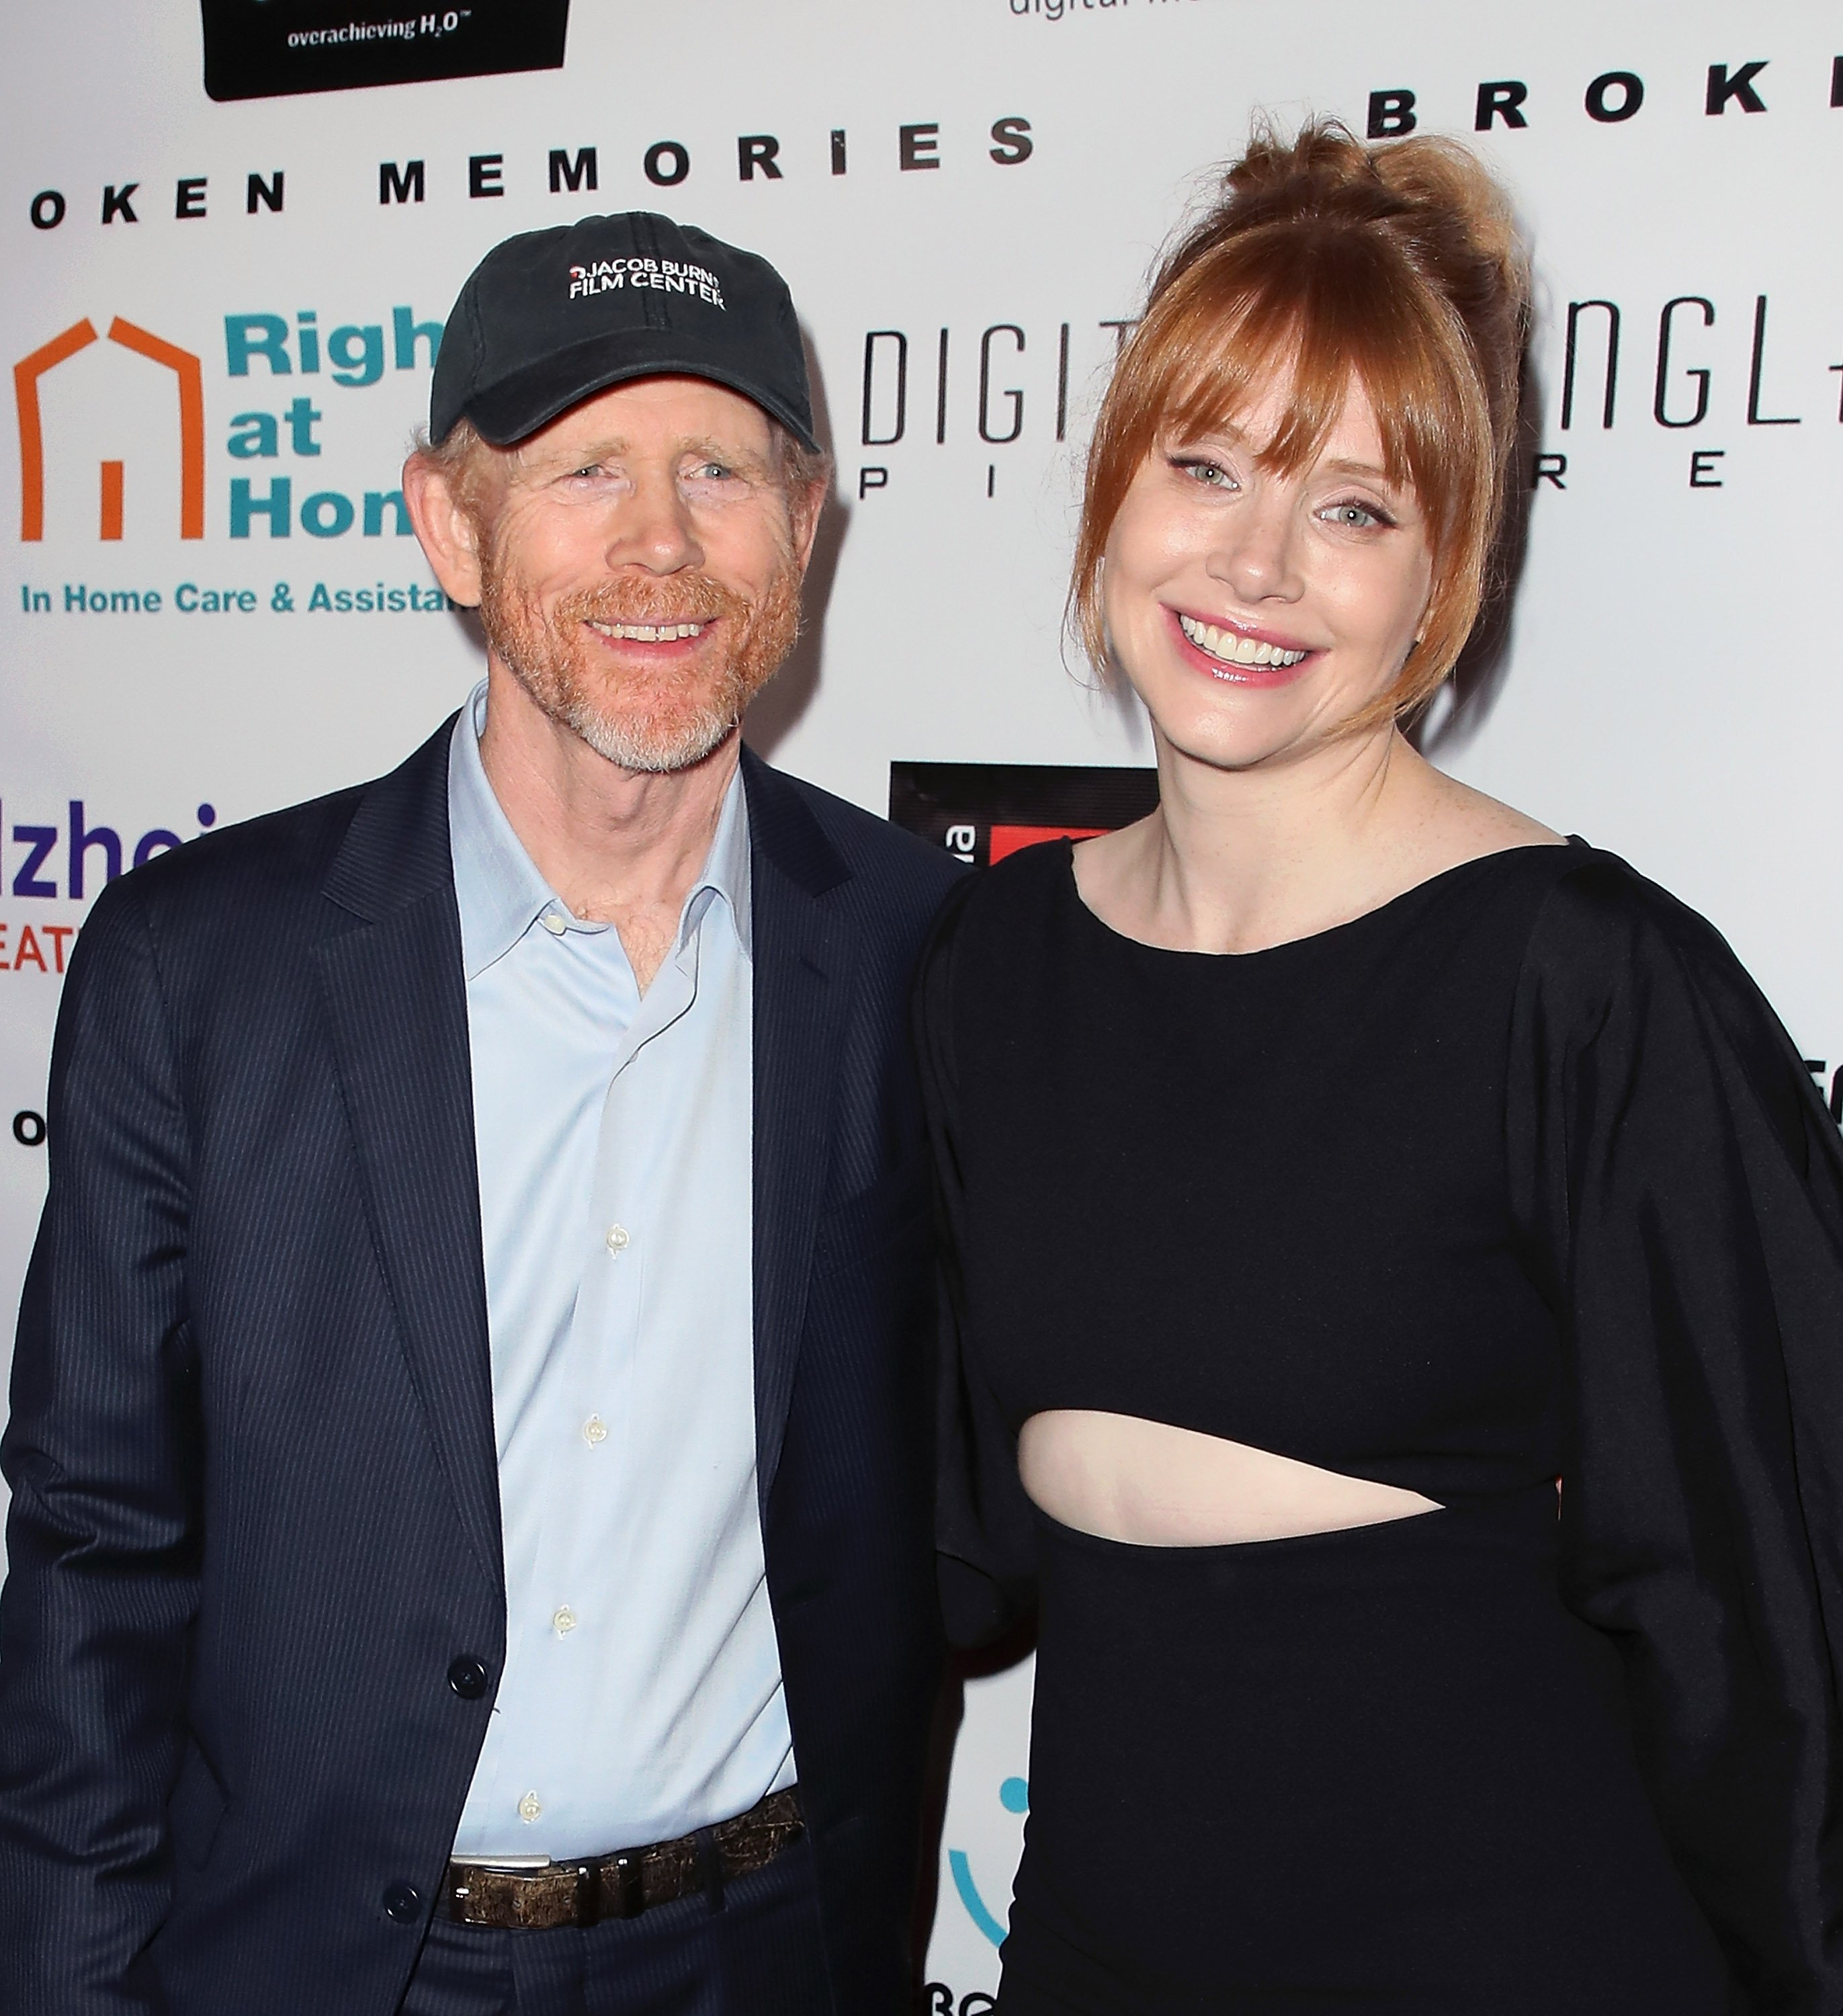 """Ron Howard and his daughter, Bryce Dallas Howard pictured at a benefit screening of Digital Jungle Pictures' """"Broken Memories,"""" 2017, California. 